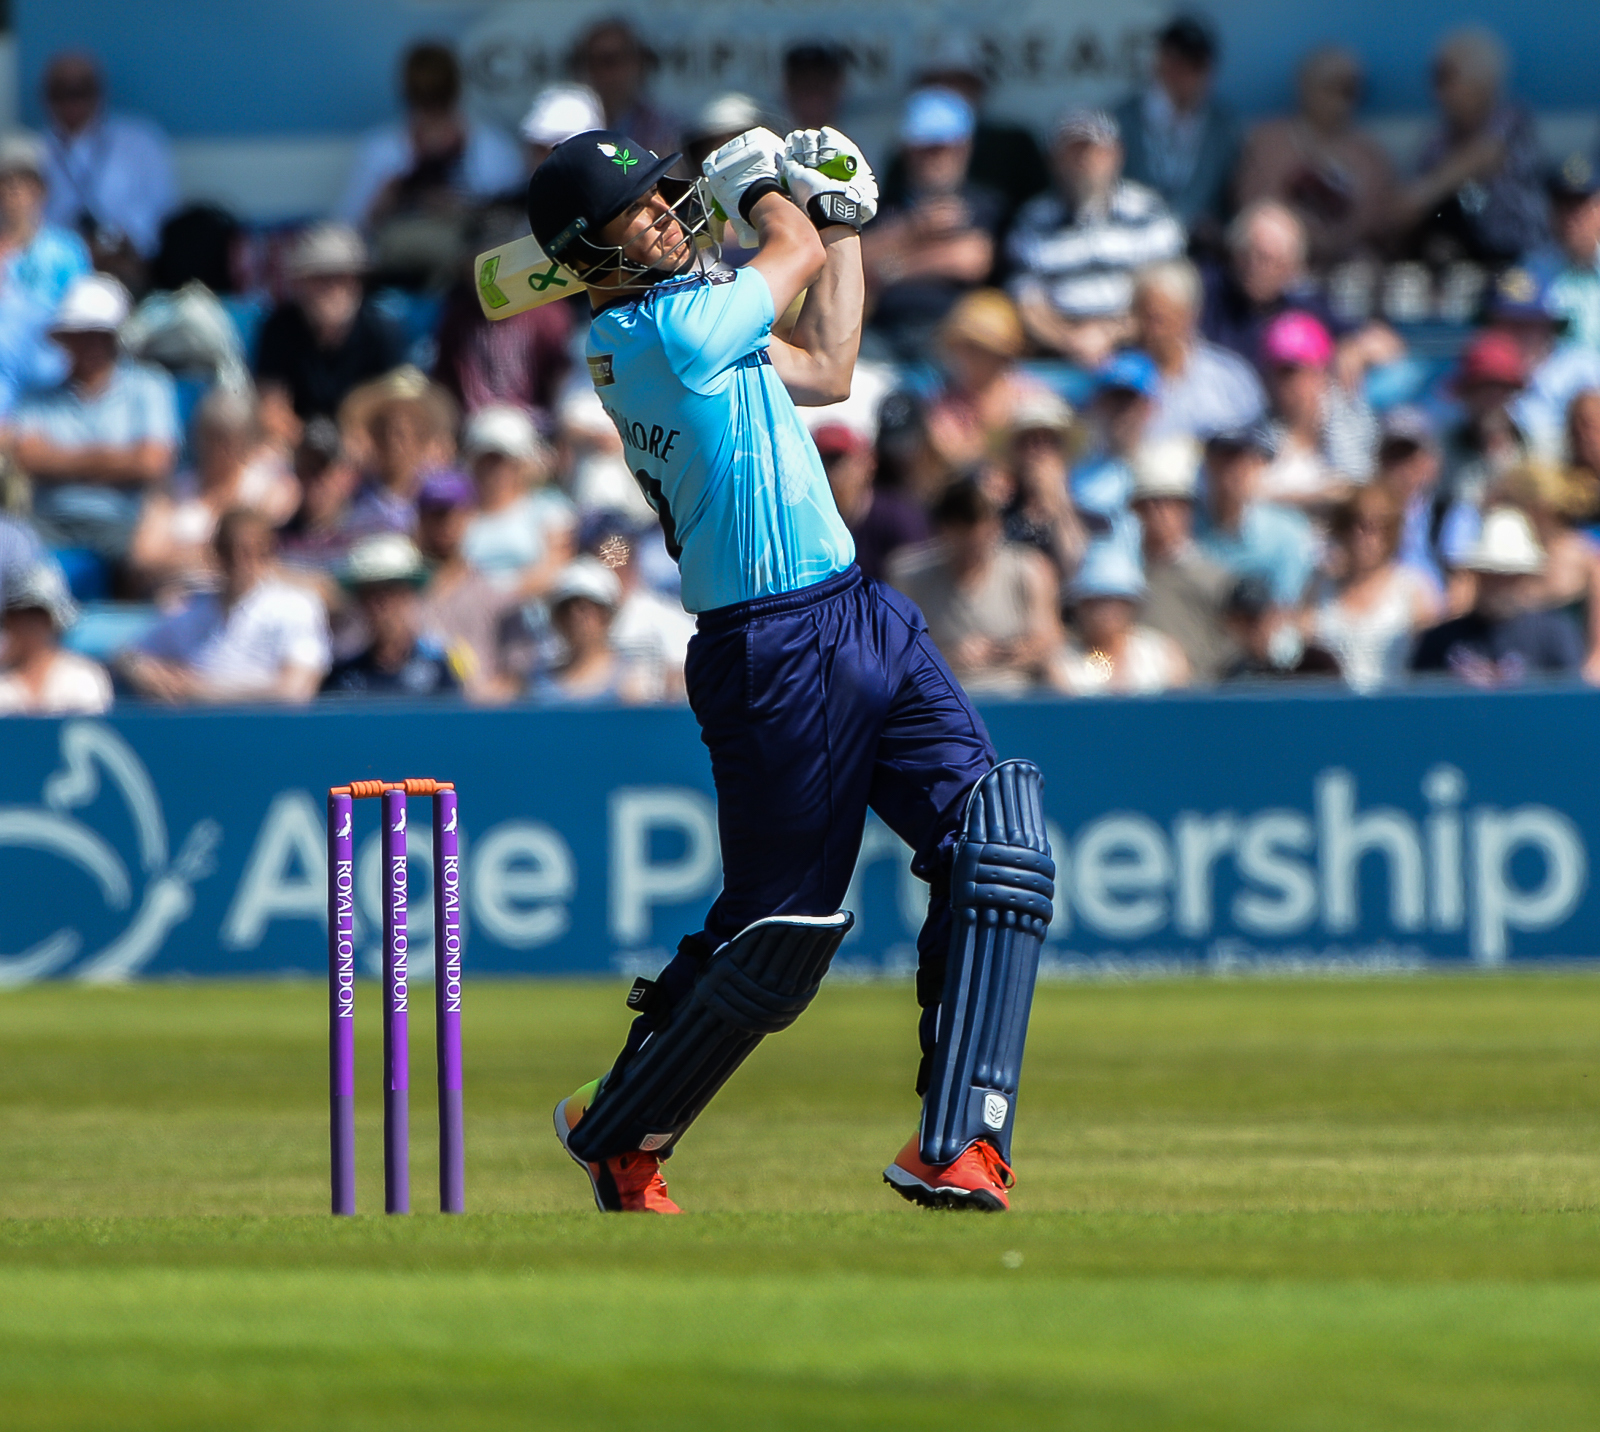 Tom Kohler-Cadmore's heavy run-scoring in the Royal London one-day Cup has led to a first call up to the England Lions squad Picture: Ray Spencer